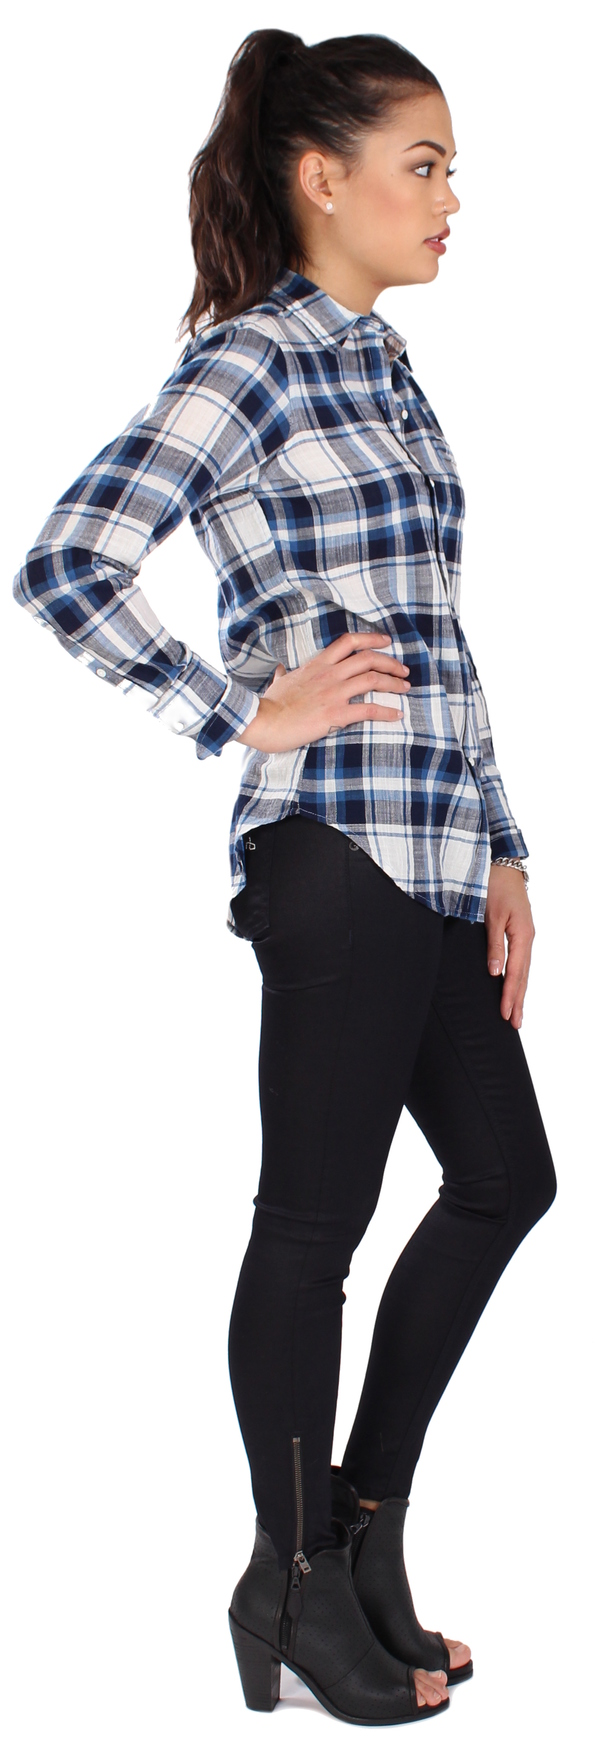 Nili Lotan Shirt Chambray Plaid